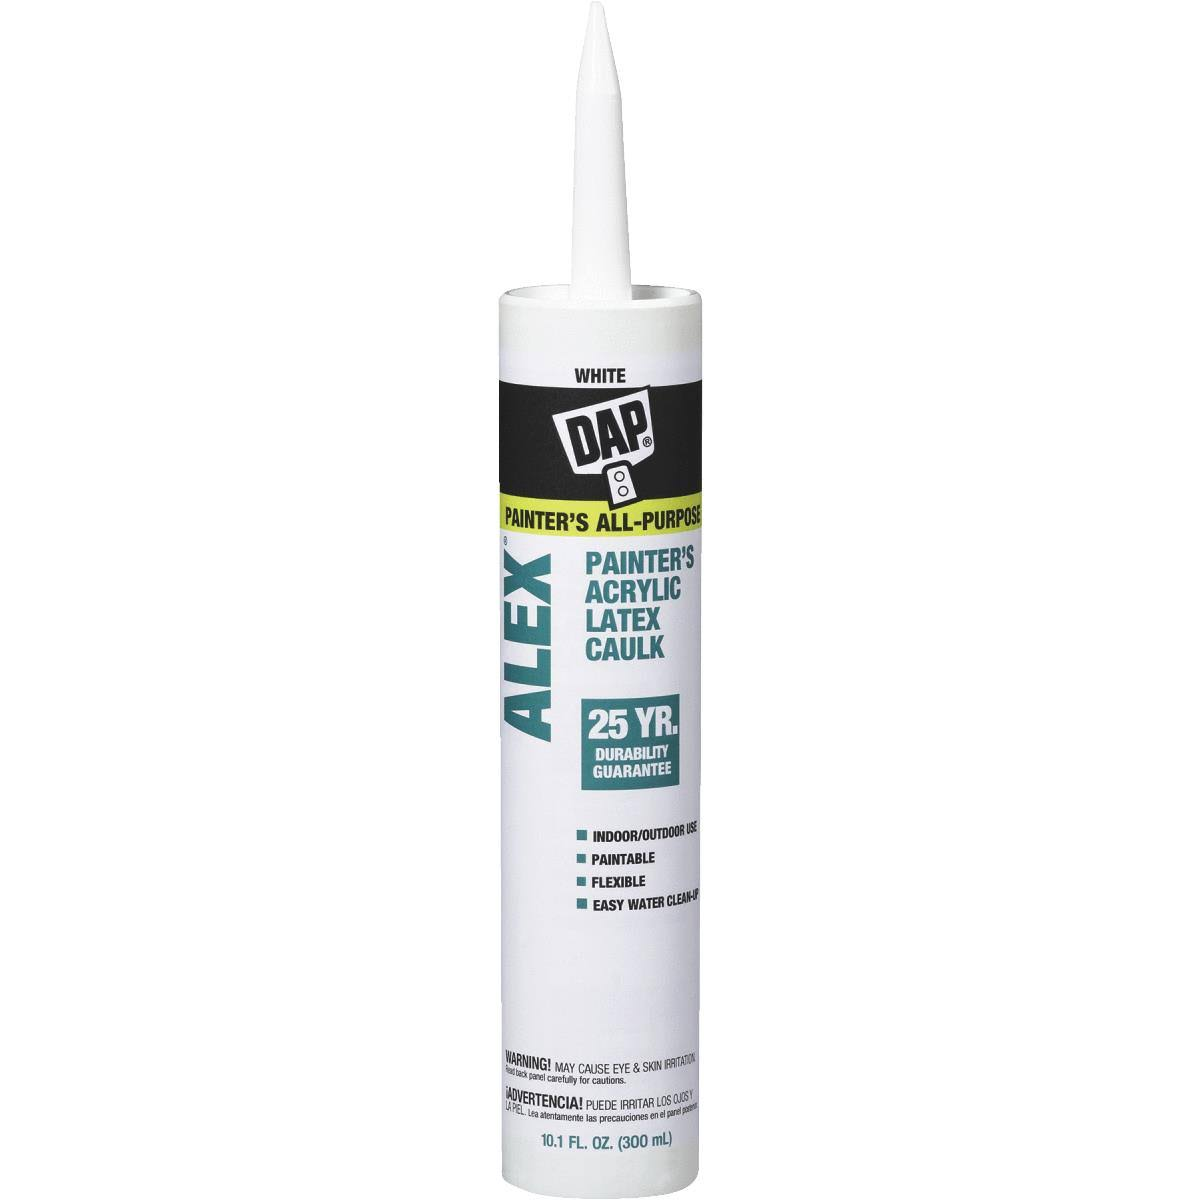 DAP Alex Painter's All-Purpose Acrylic Latex Caulk